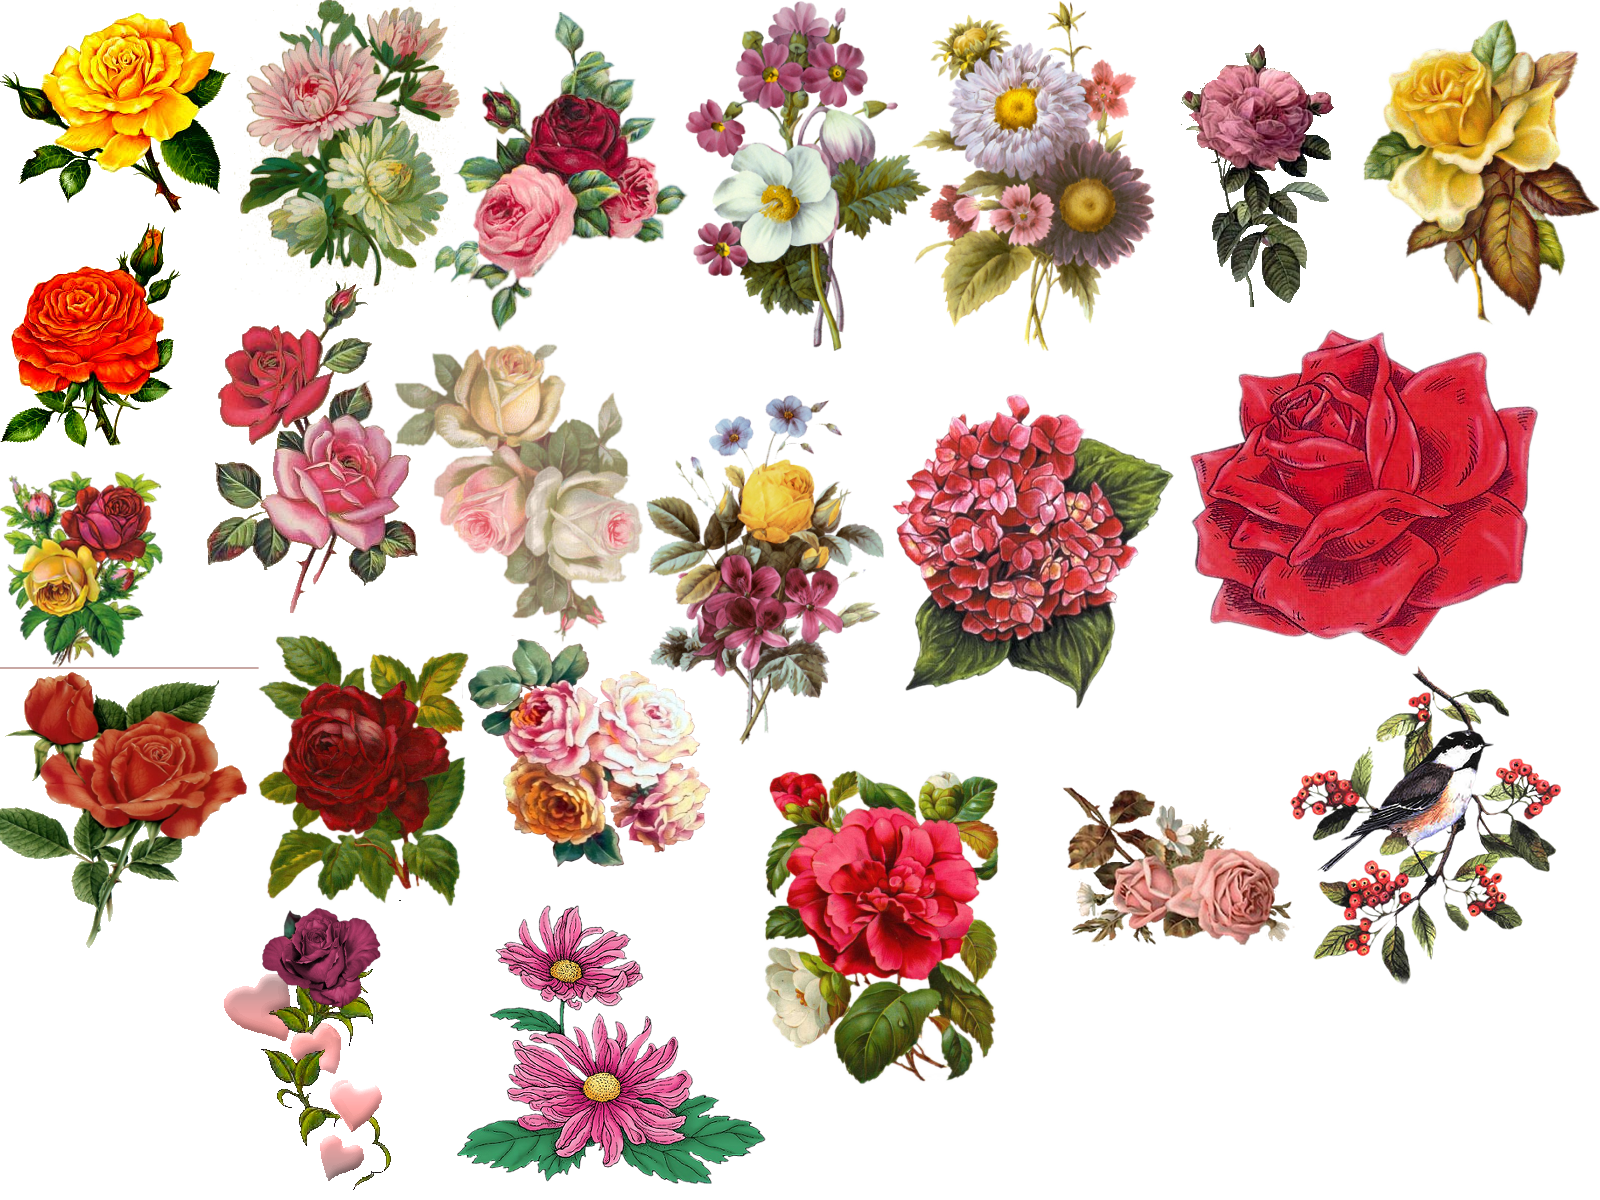 Flower spray clipart graphic download Vintage Flower Pictures - Beautiful Flowers | hcthc | Pinterest ... graphic download